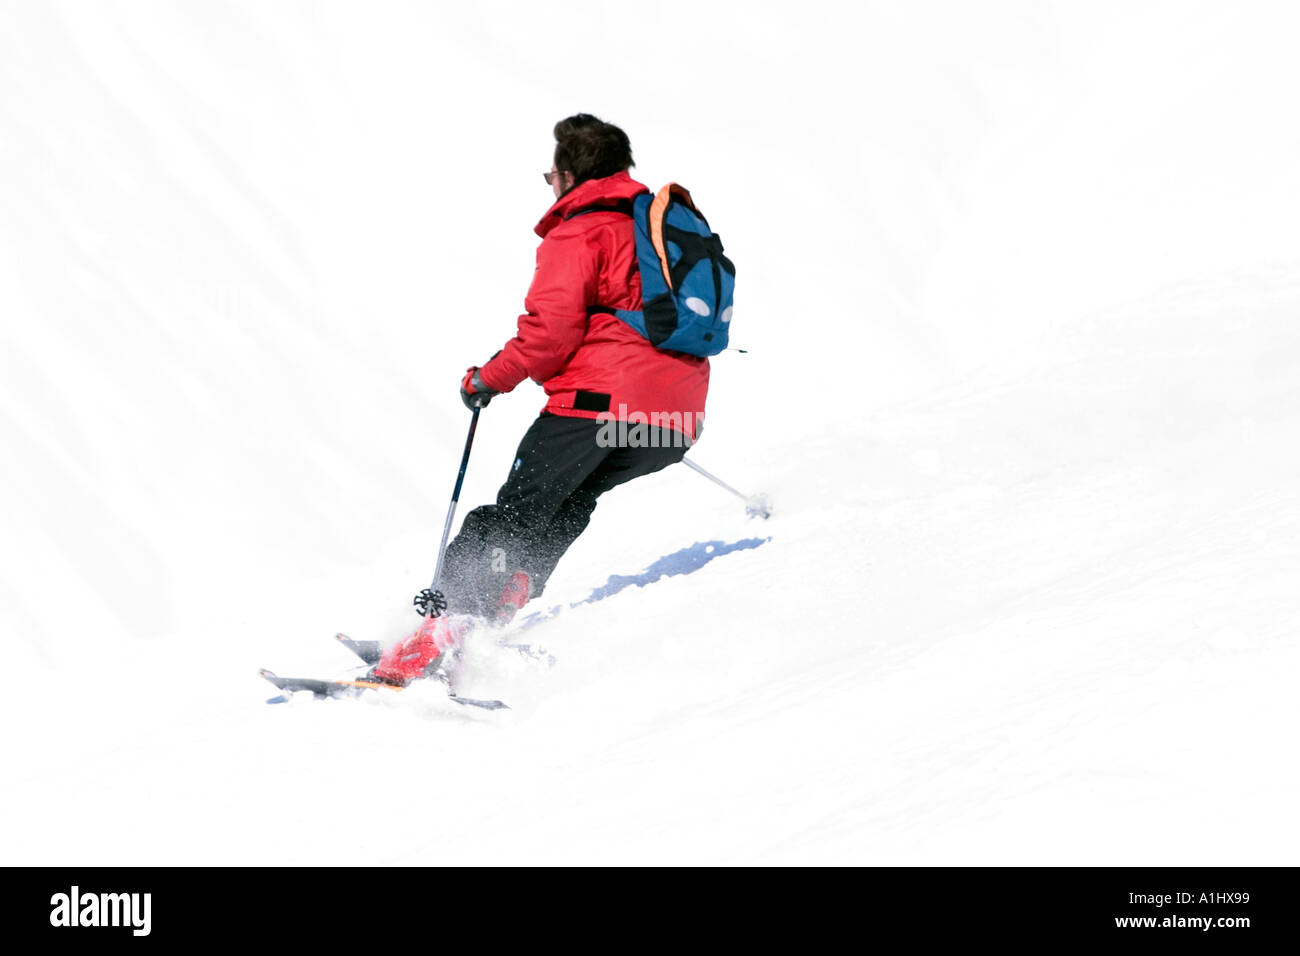 enjoying the powder snow through on a winter day in grand bornand France - Stock Image